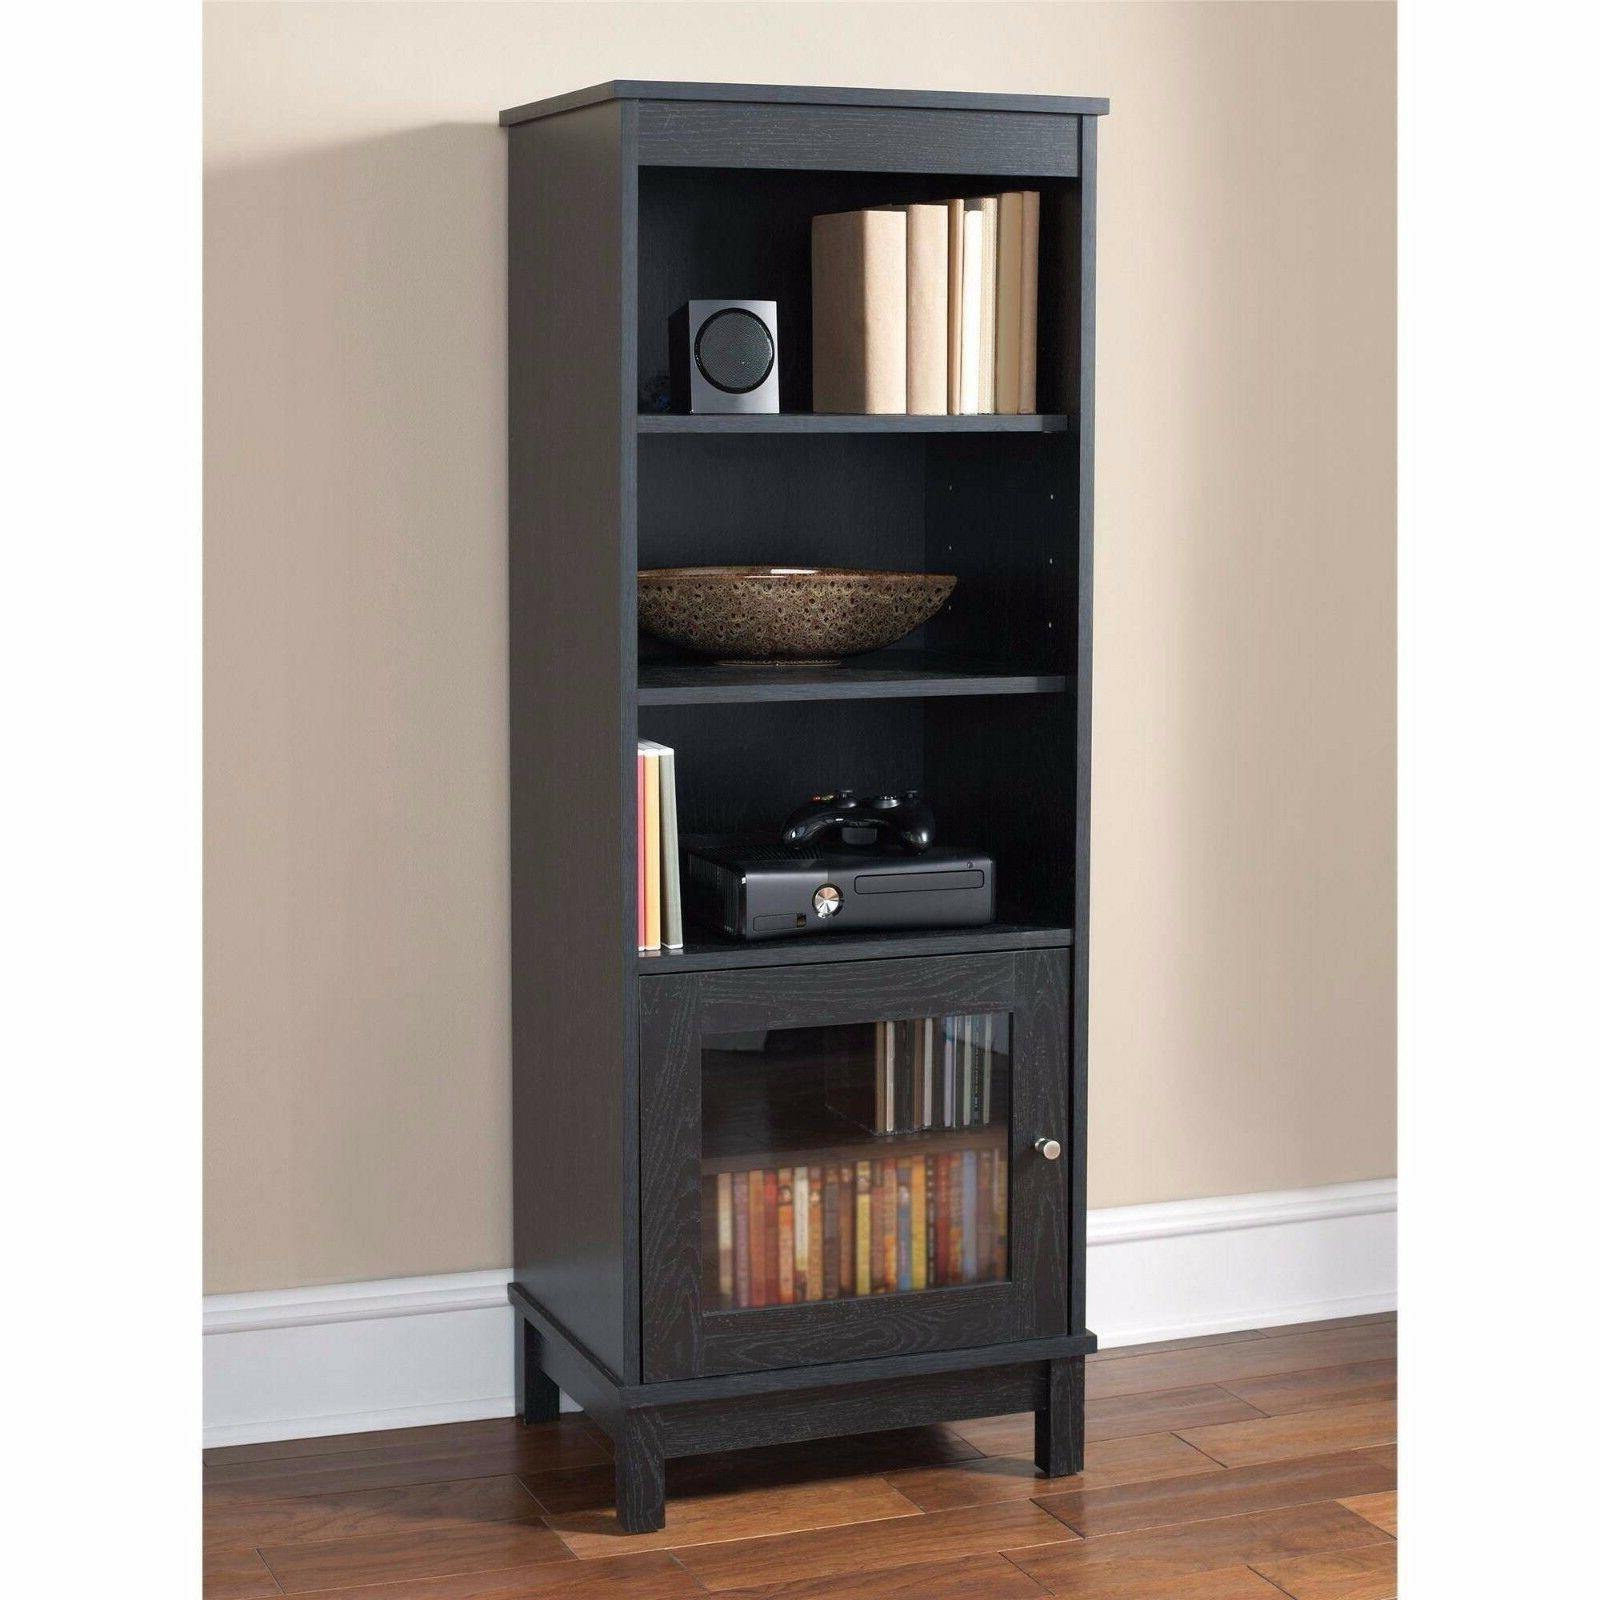 Bookcase with Glass Doors Traditional Bookshelf Cabinet Furn